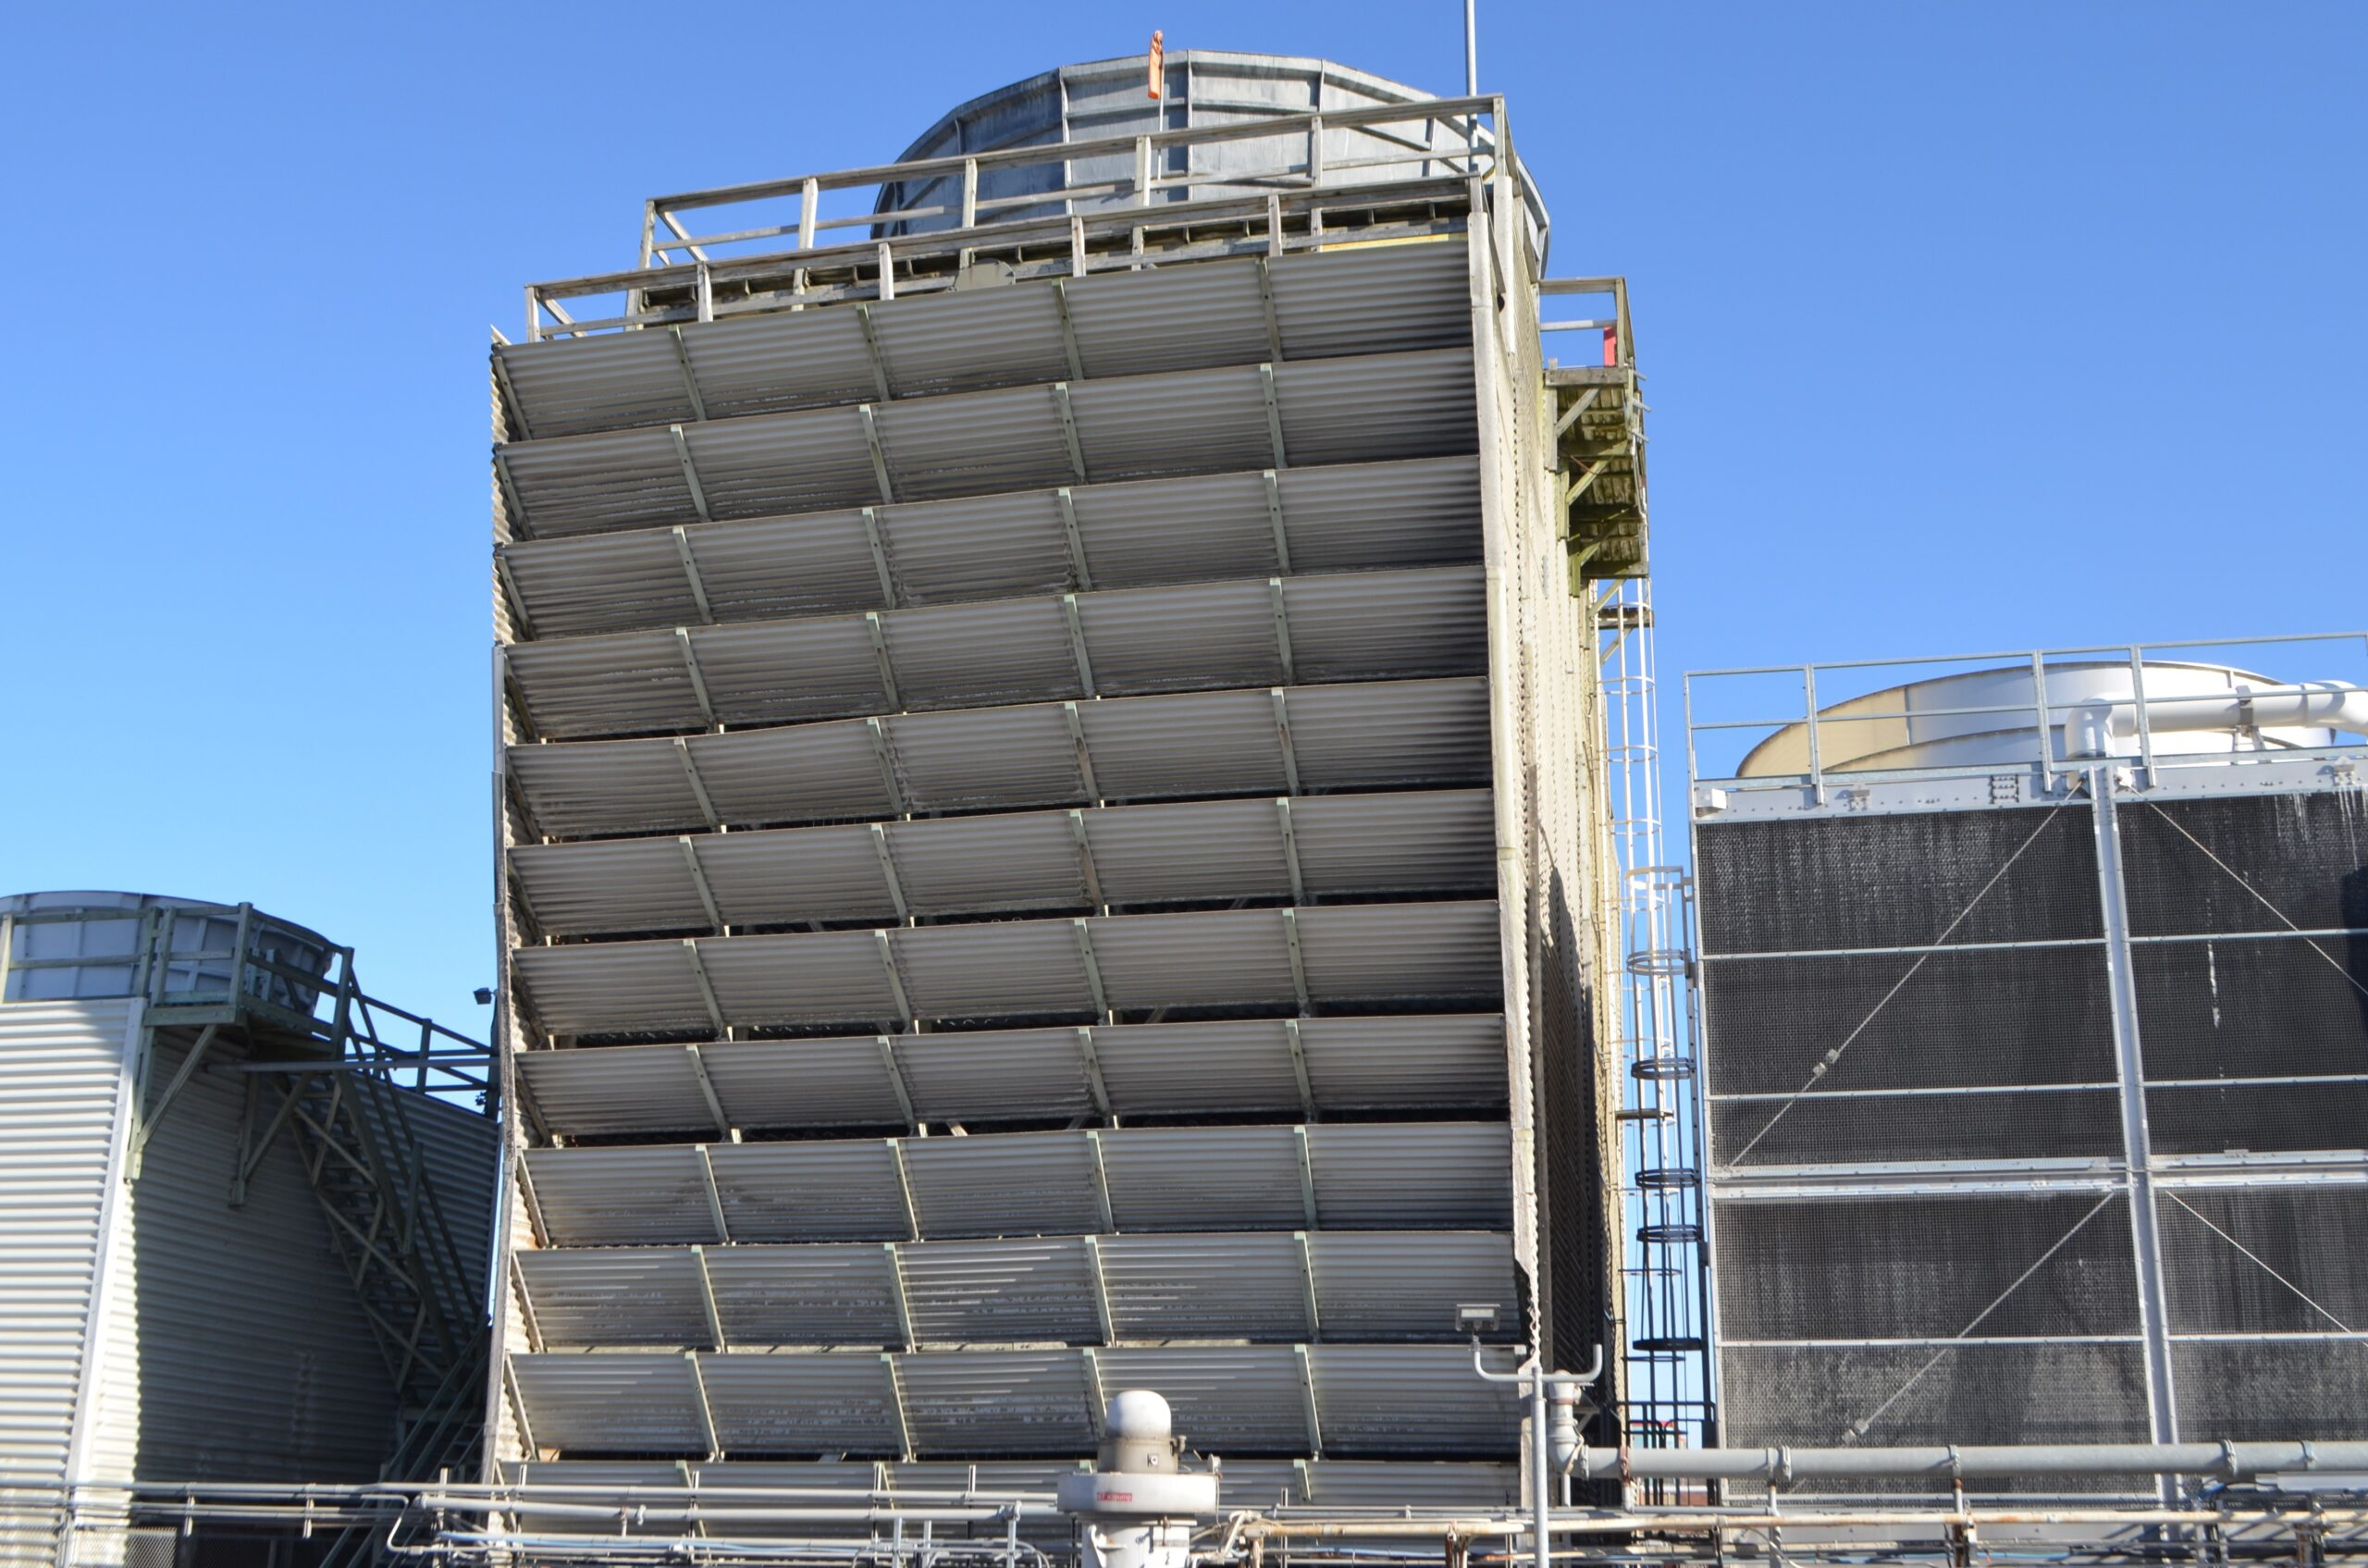 Cooling Tower Pre demolition Vertical View